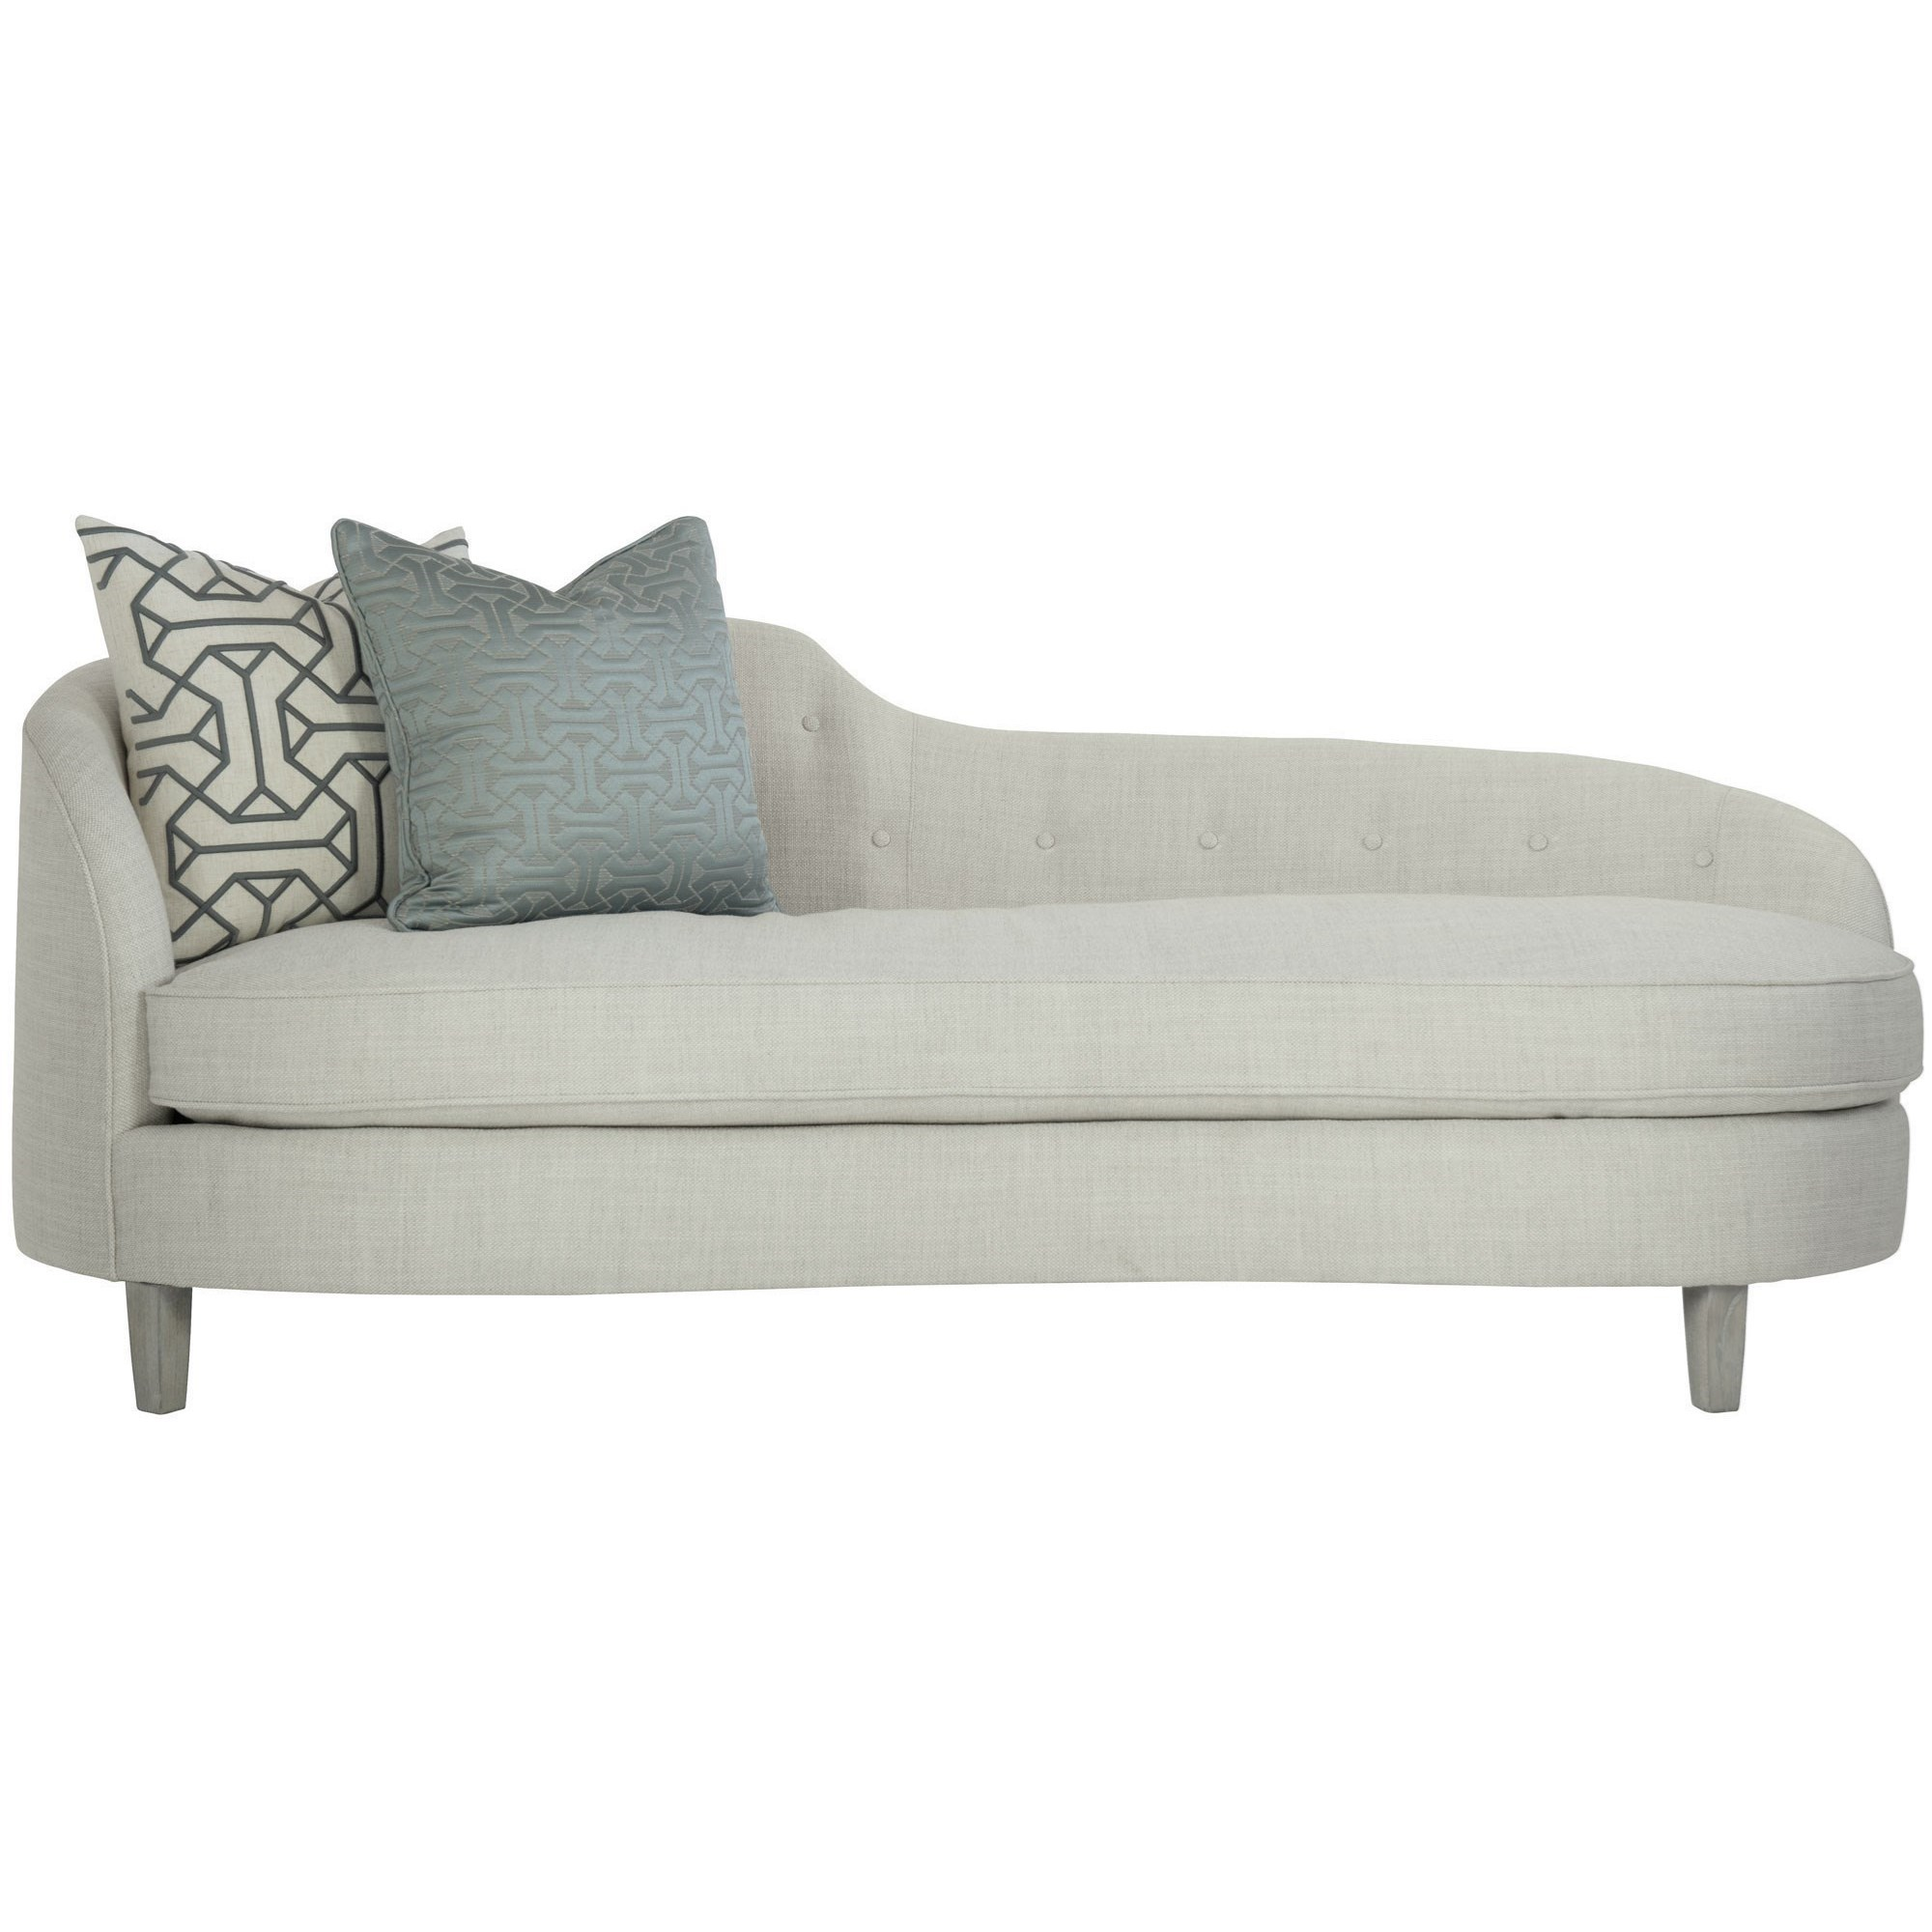 Interiors - Lorient Left Arm Chaise at Williams & Kay